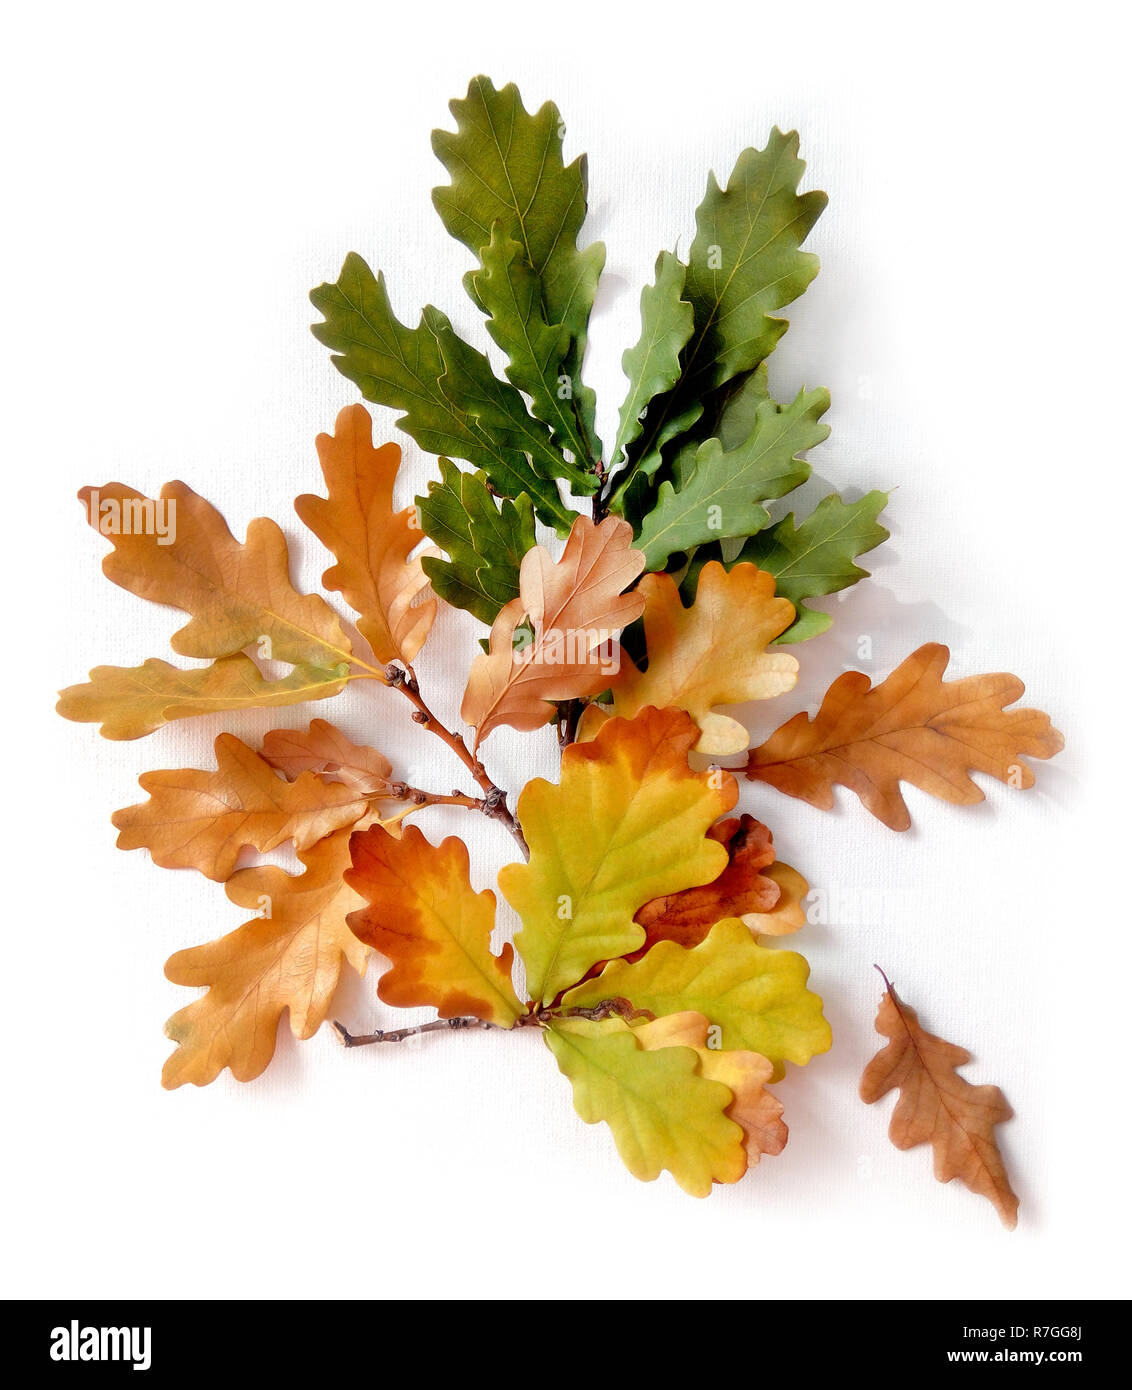 Autumn composition. Oak  leaves on white isolated  background. Autumn, fall concept. Flat lay, top view autumn bouquet. Stock Photo